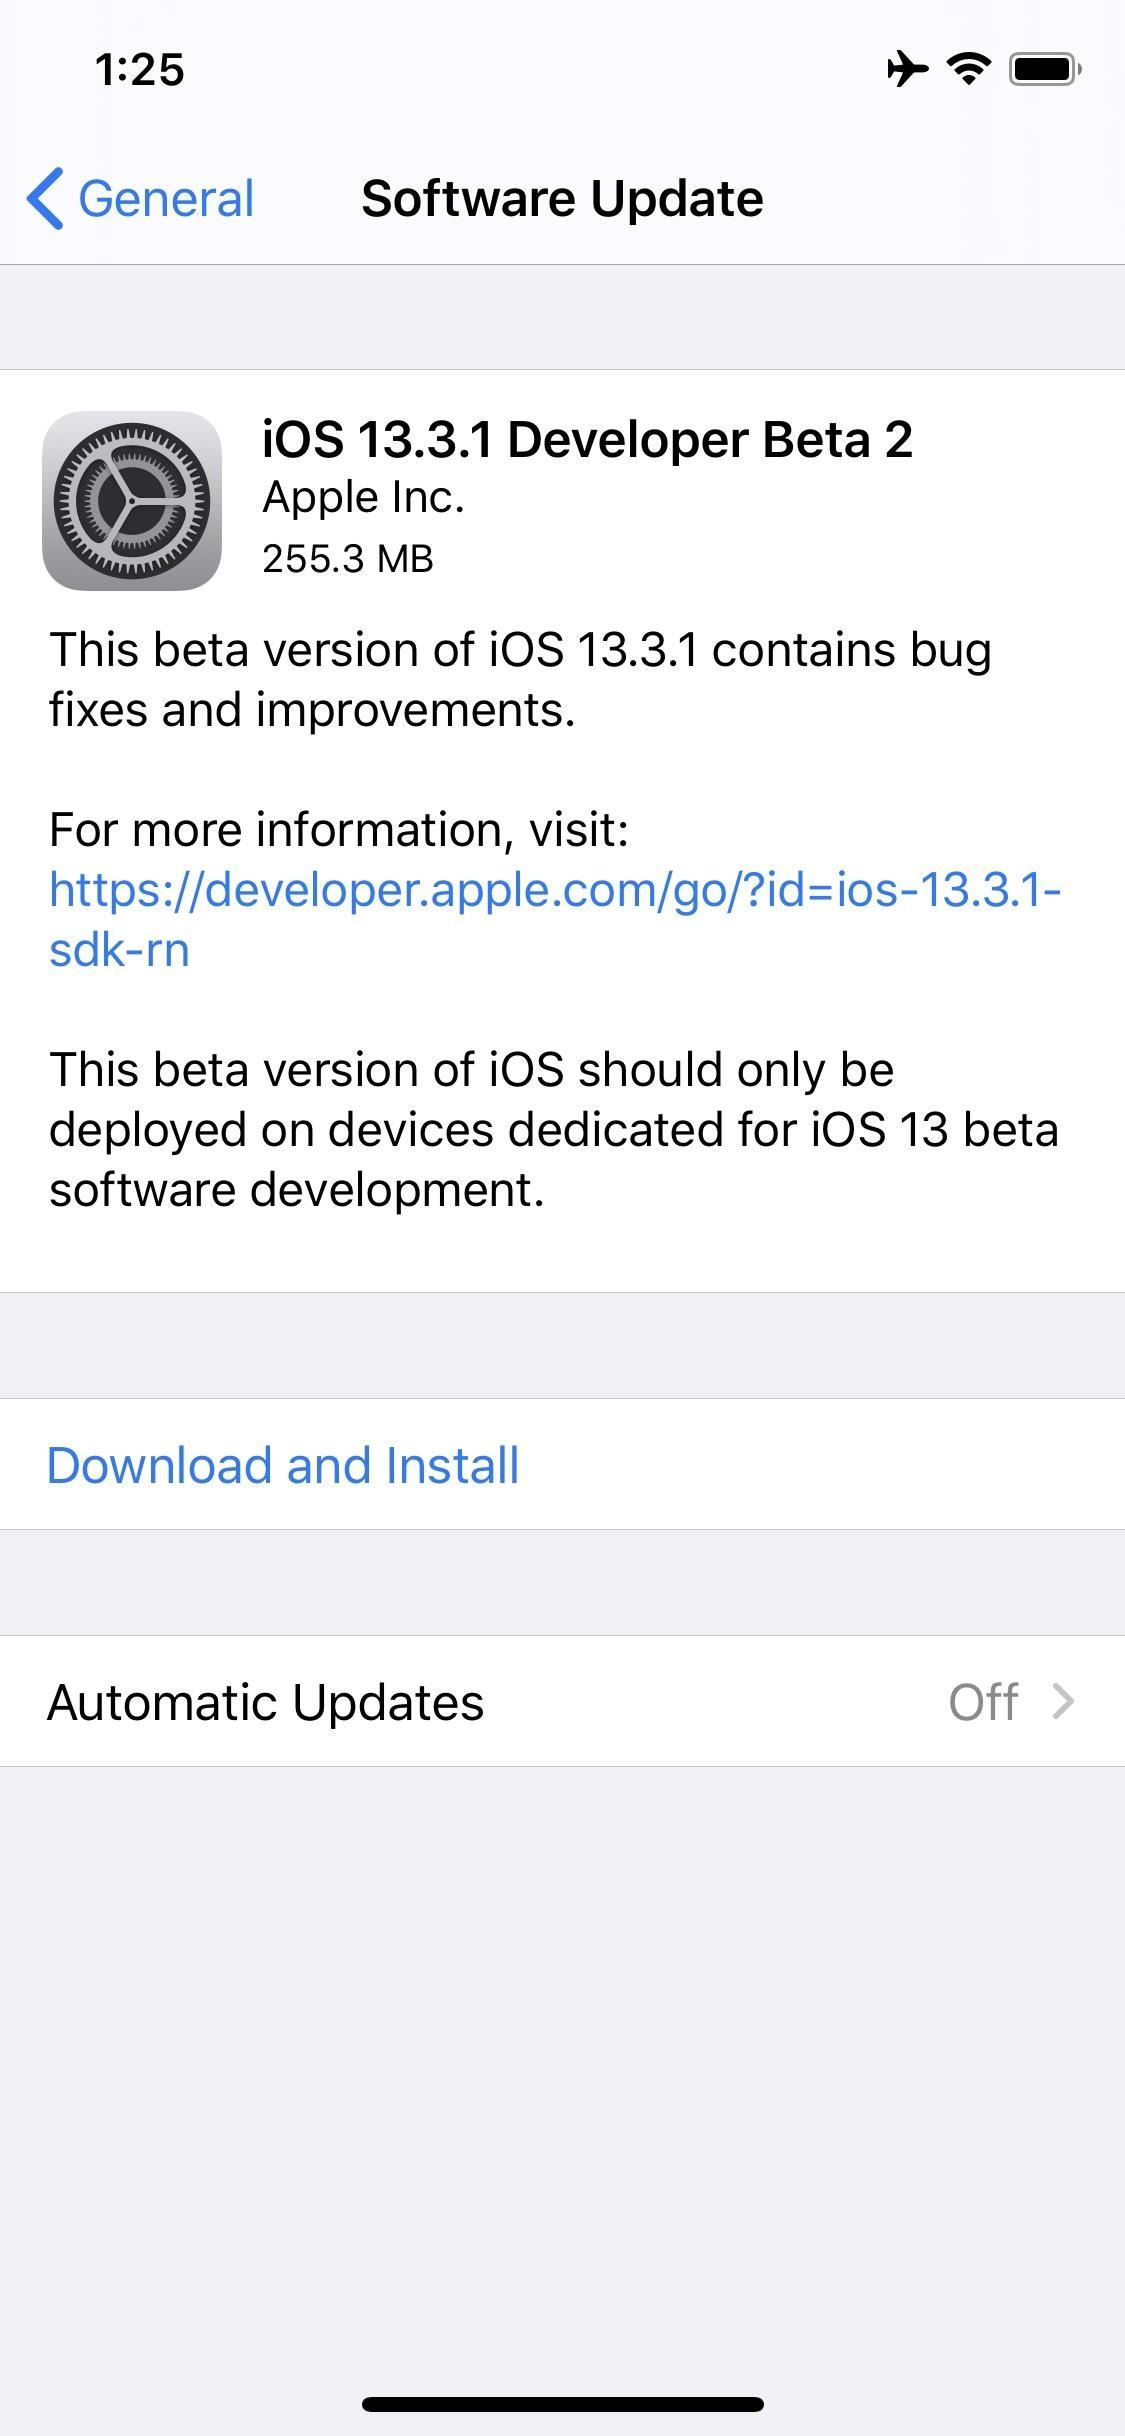 Apple Releases iOS 13.3.1 Developer Beta 2 for iPhone